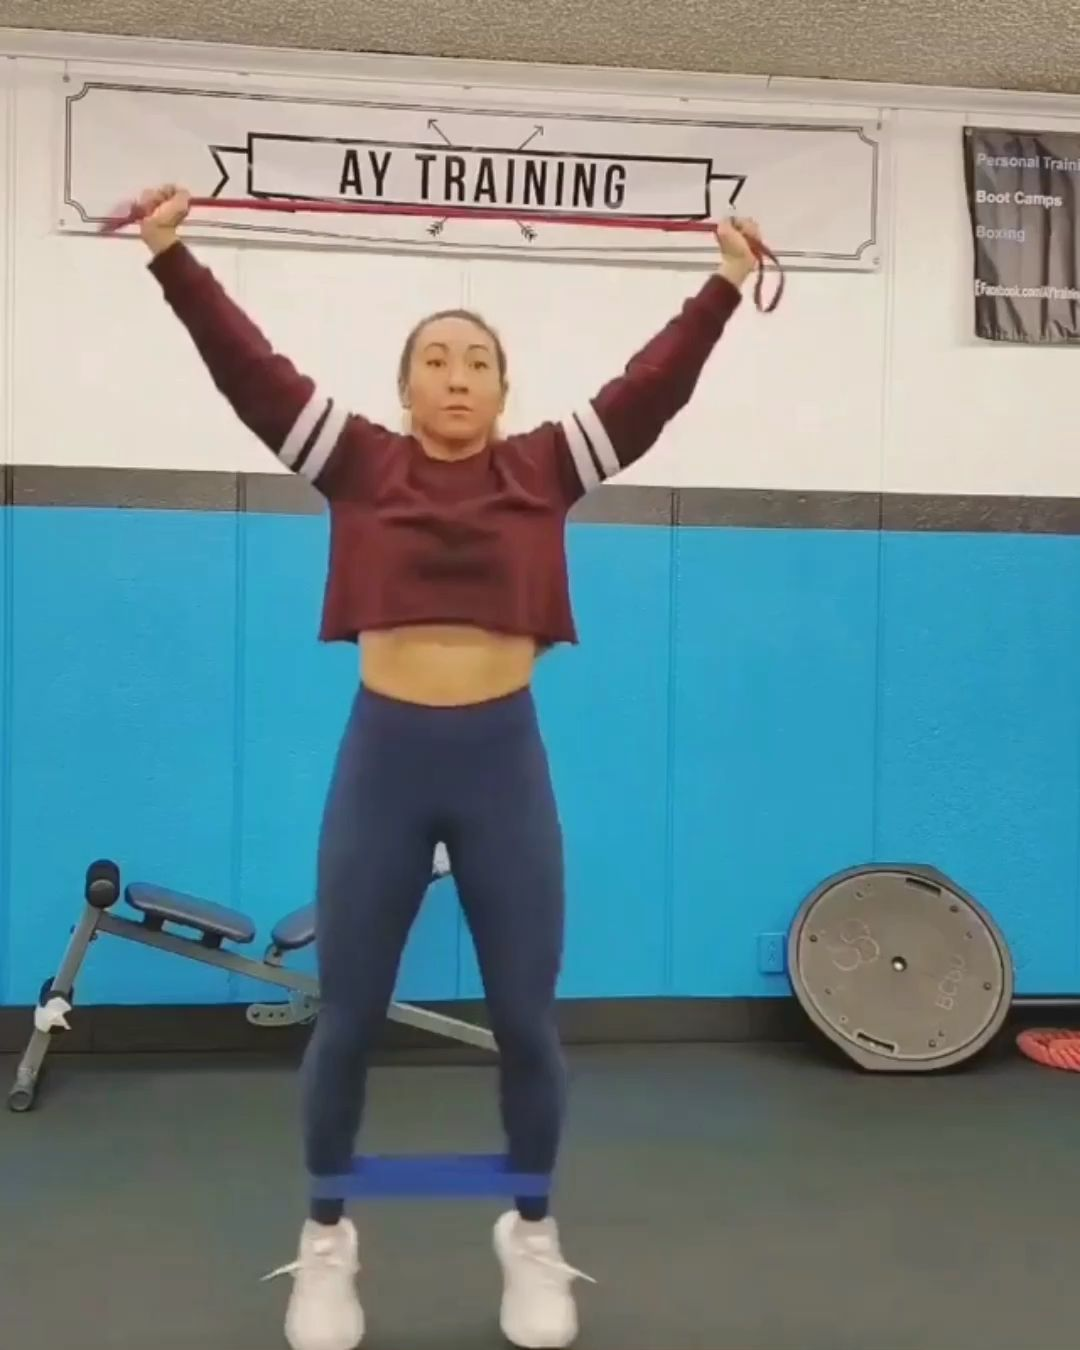 Basic Exercises With Resistance Bands